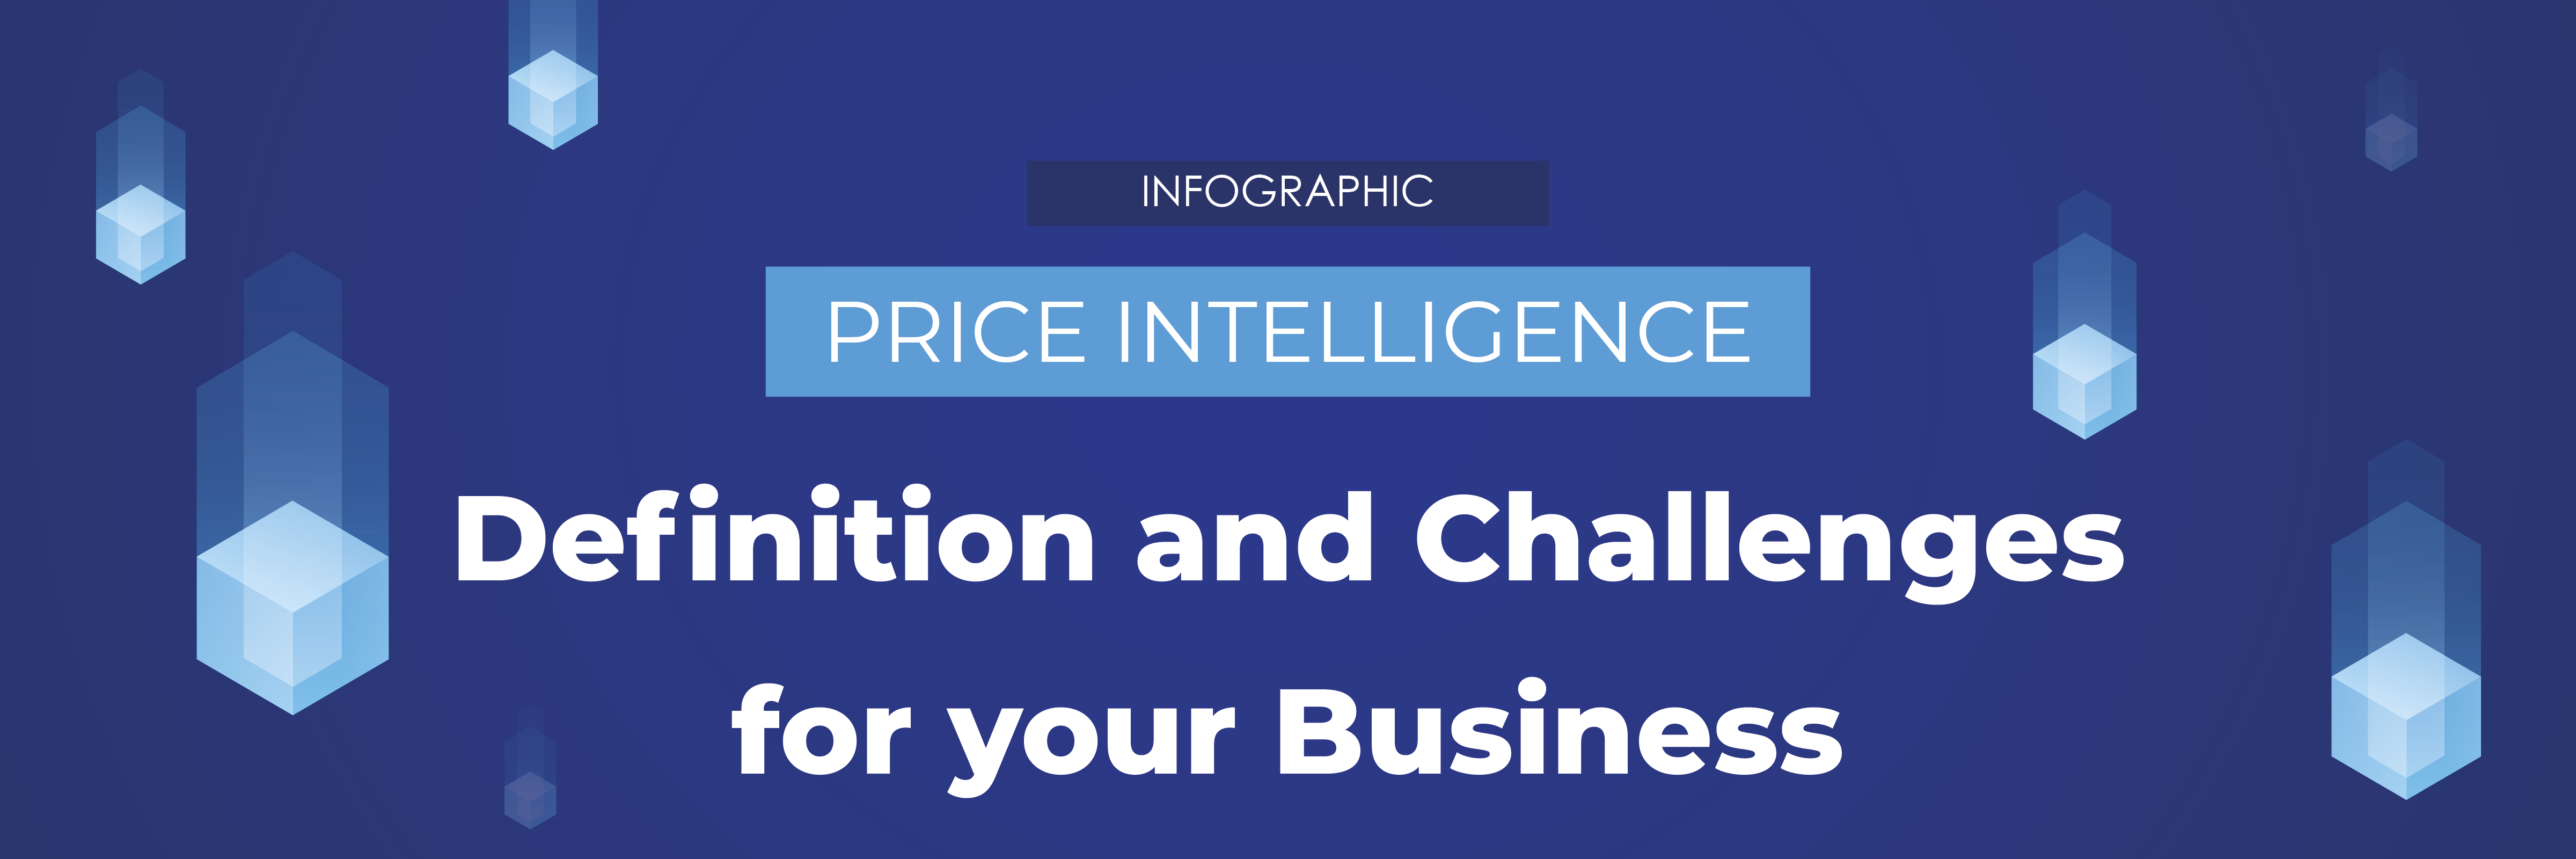 Price Intelligence: definition and challenges for your business